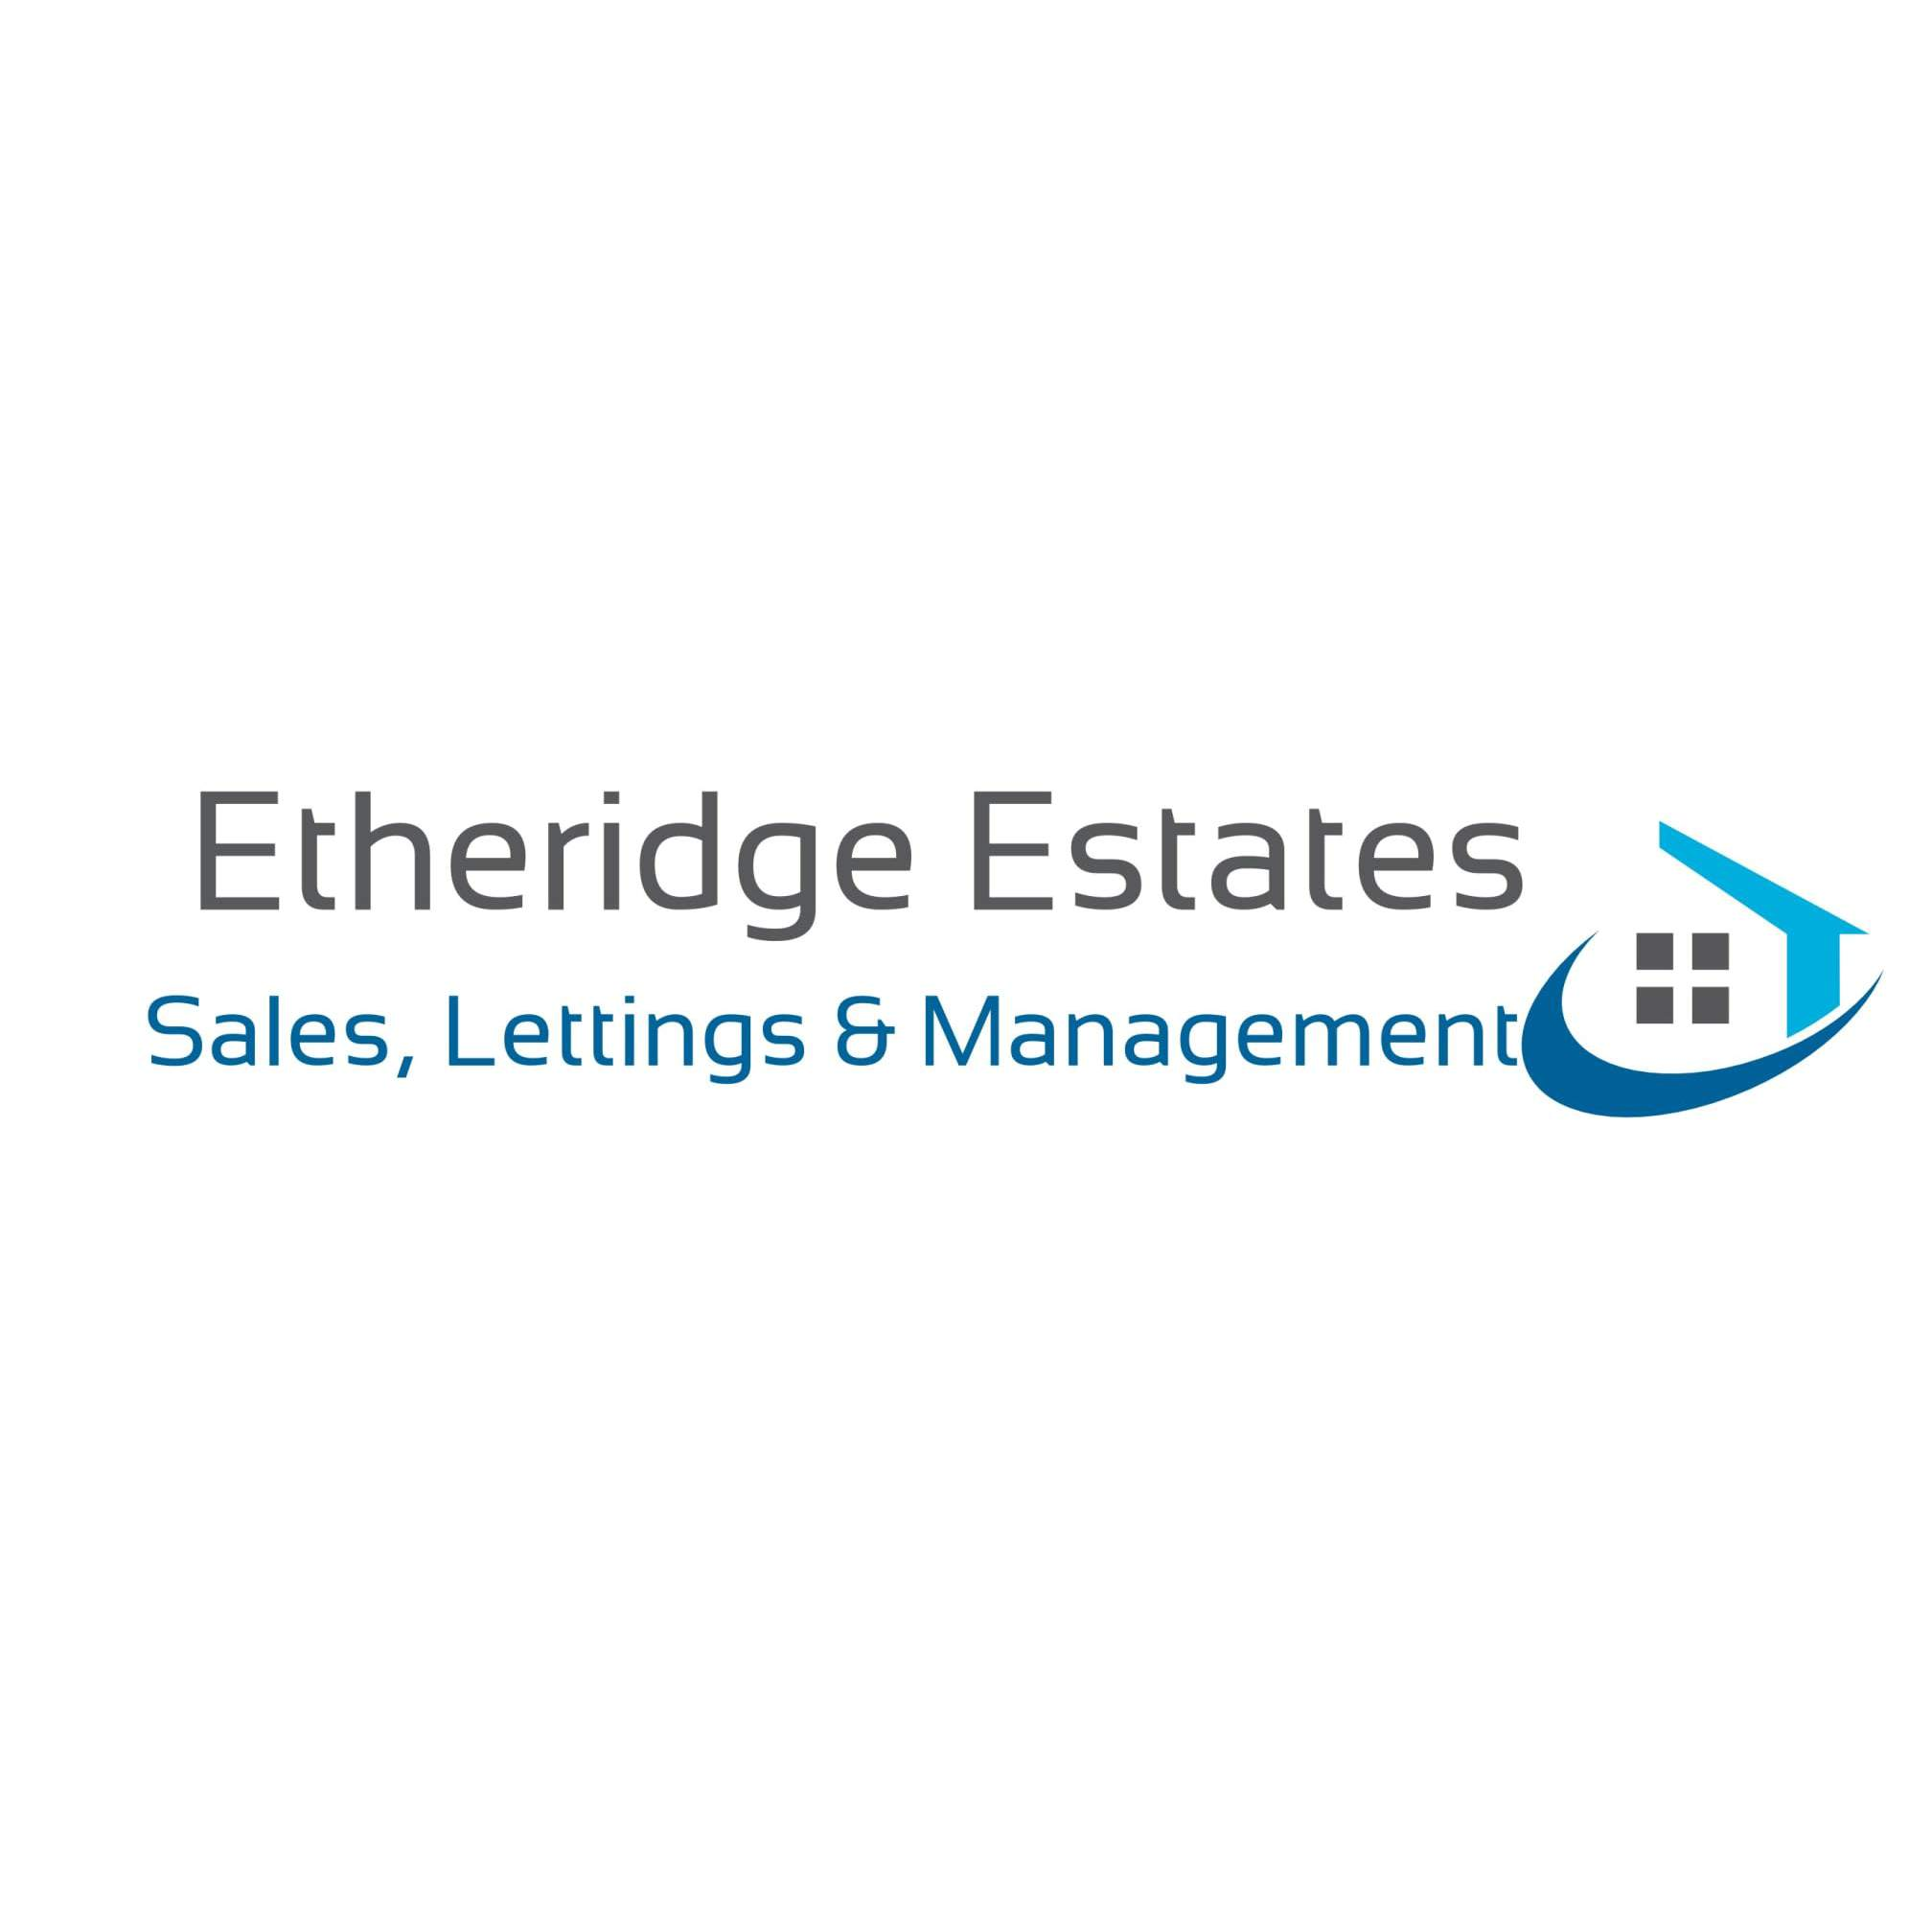 Etheridge Estates Ltd - Stanley, Durham DH9 7LG - 01207 281426 | ShowMeLocal.com